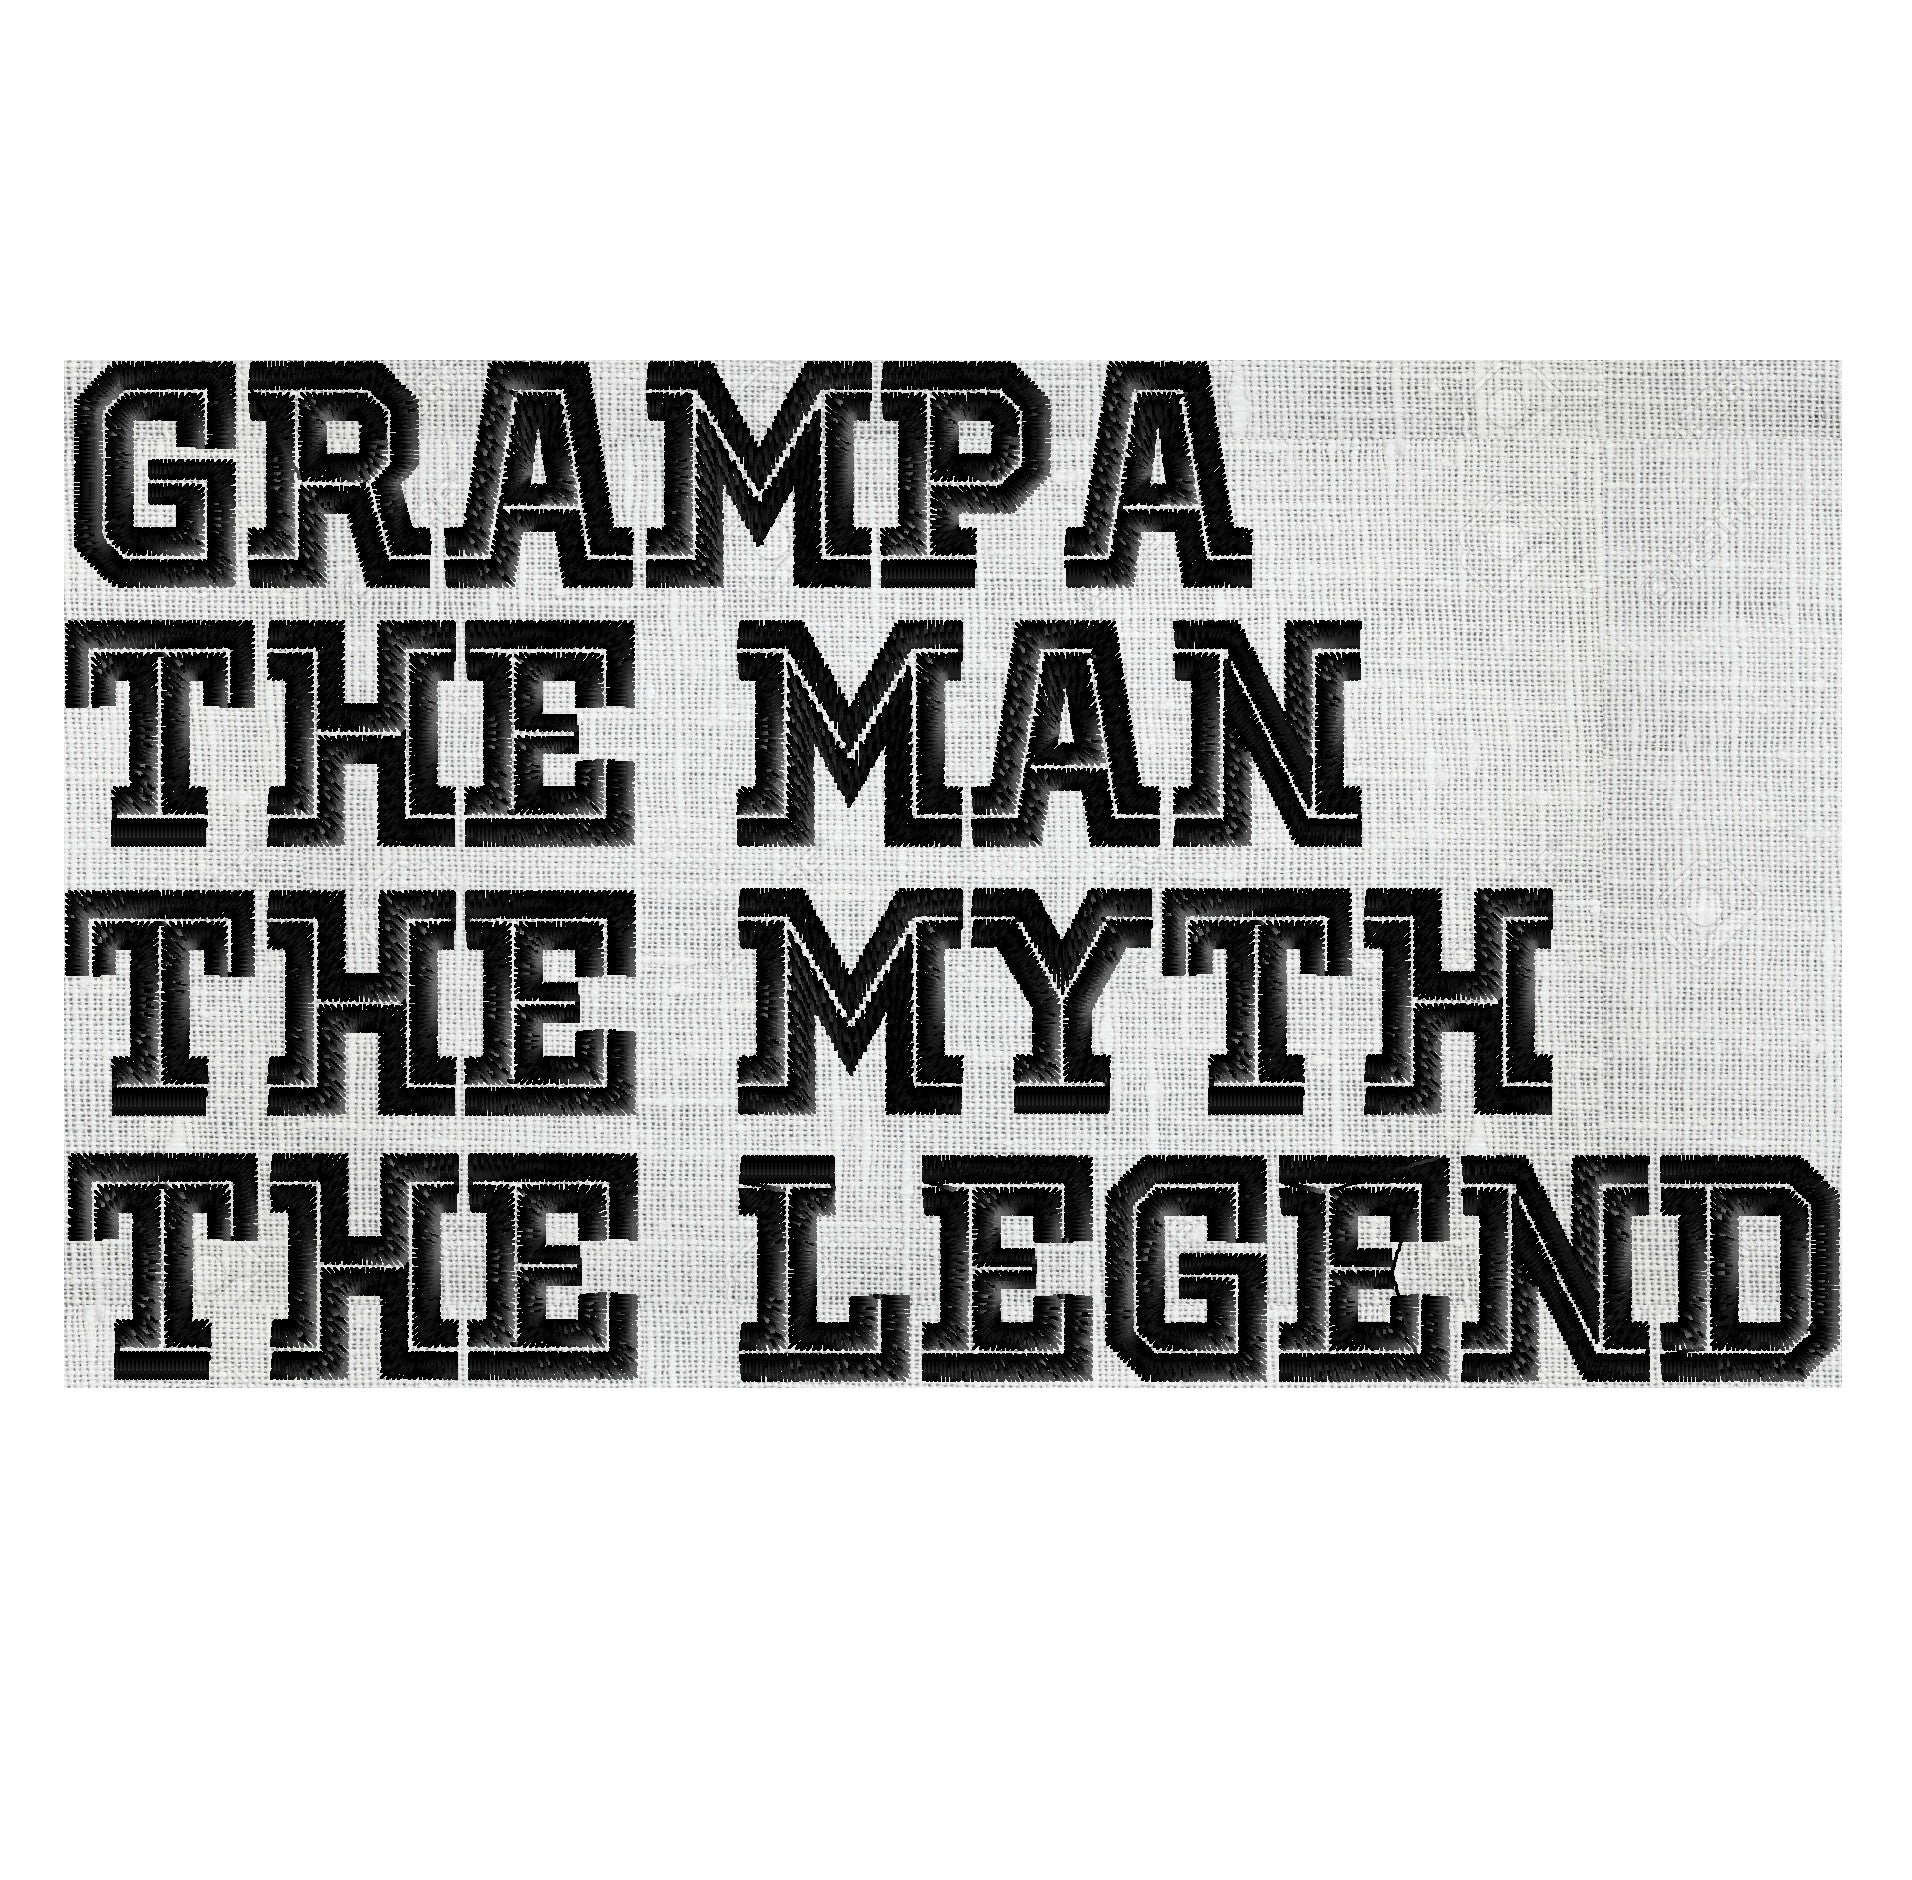 Grampa Man Myth Legend - barbecue apron quote - EMBROIDERY DESIGN ...